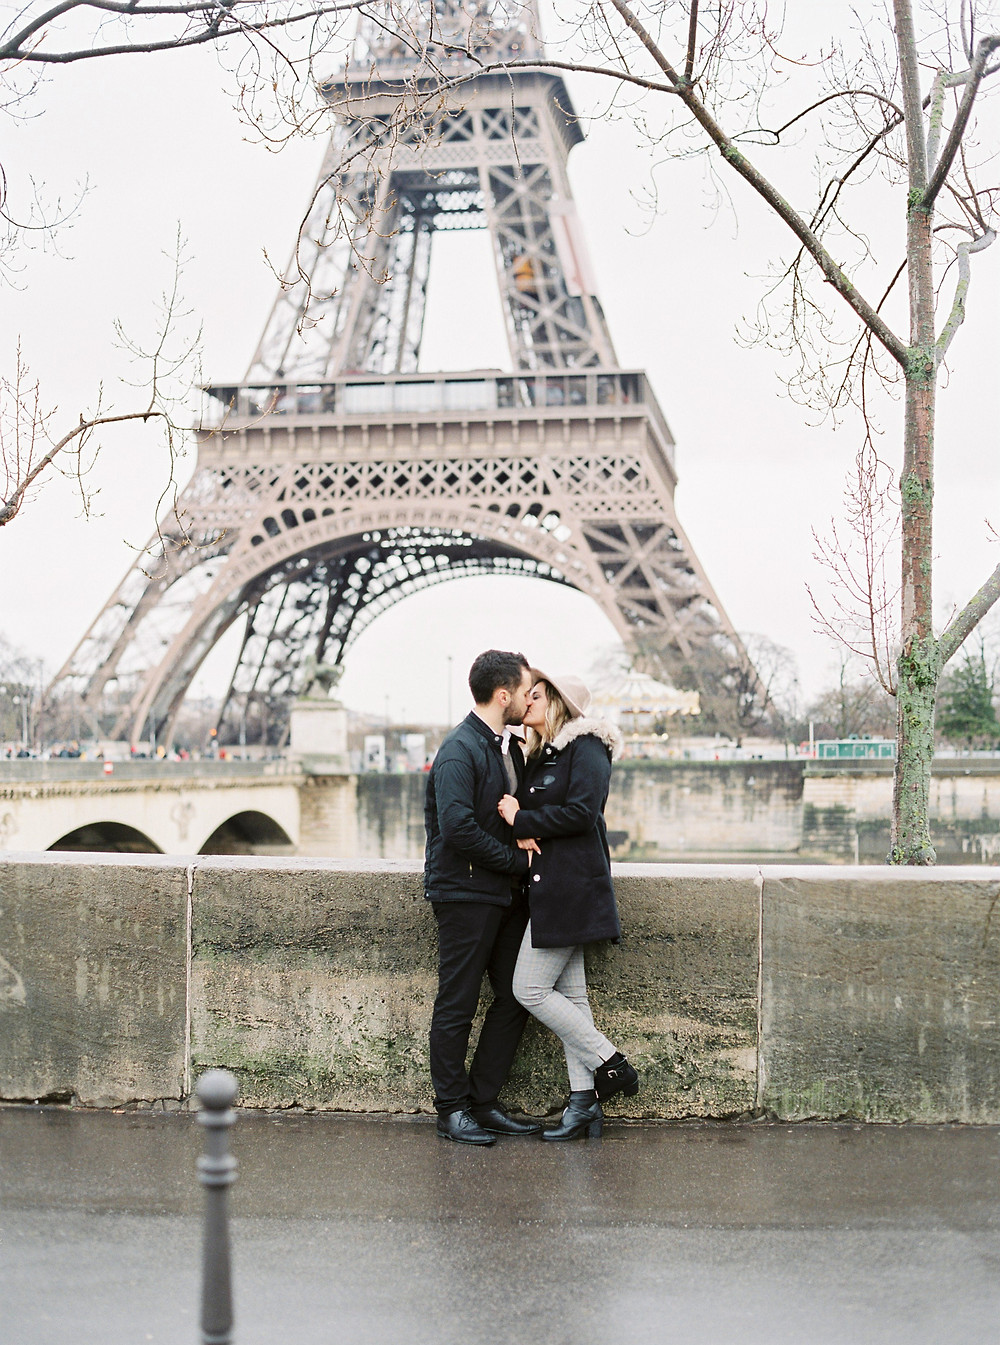 Love story photoshoot in Paris